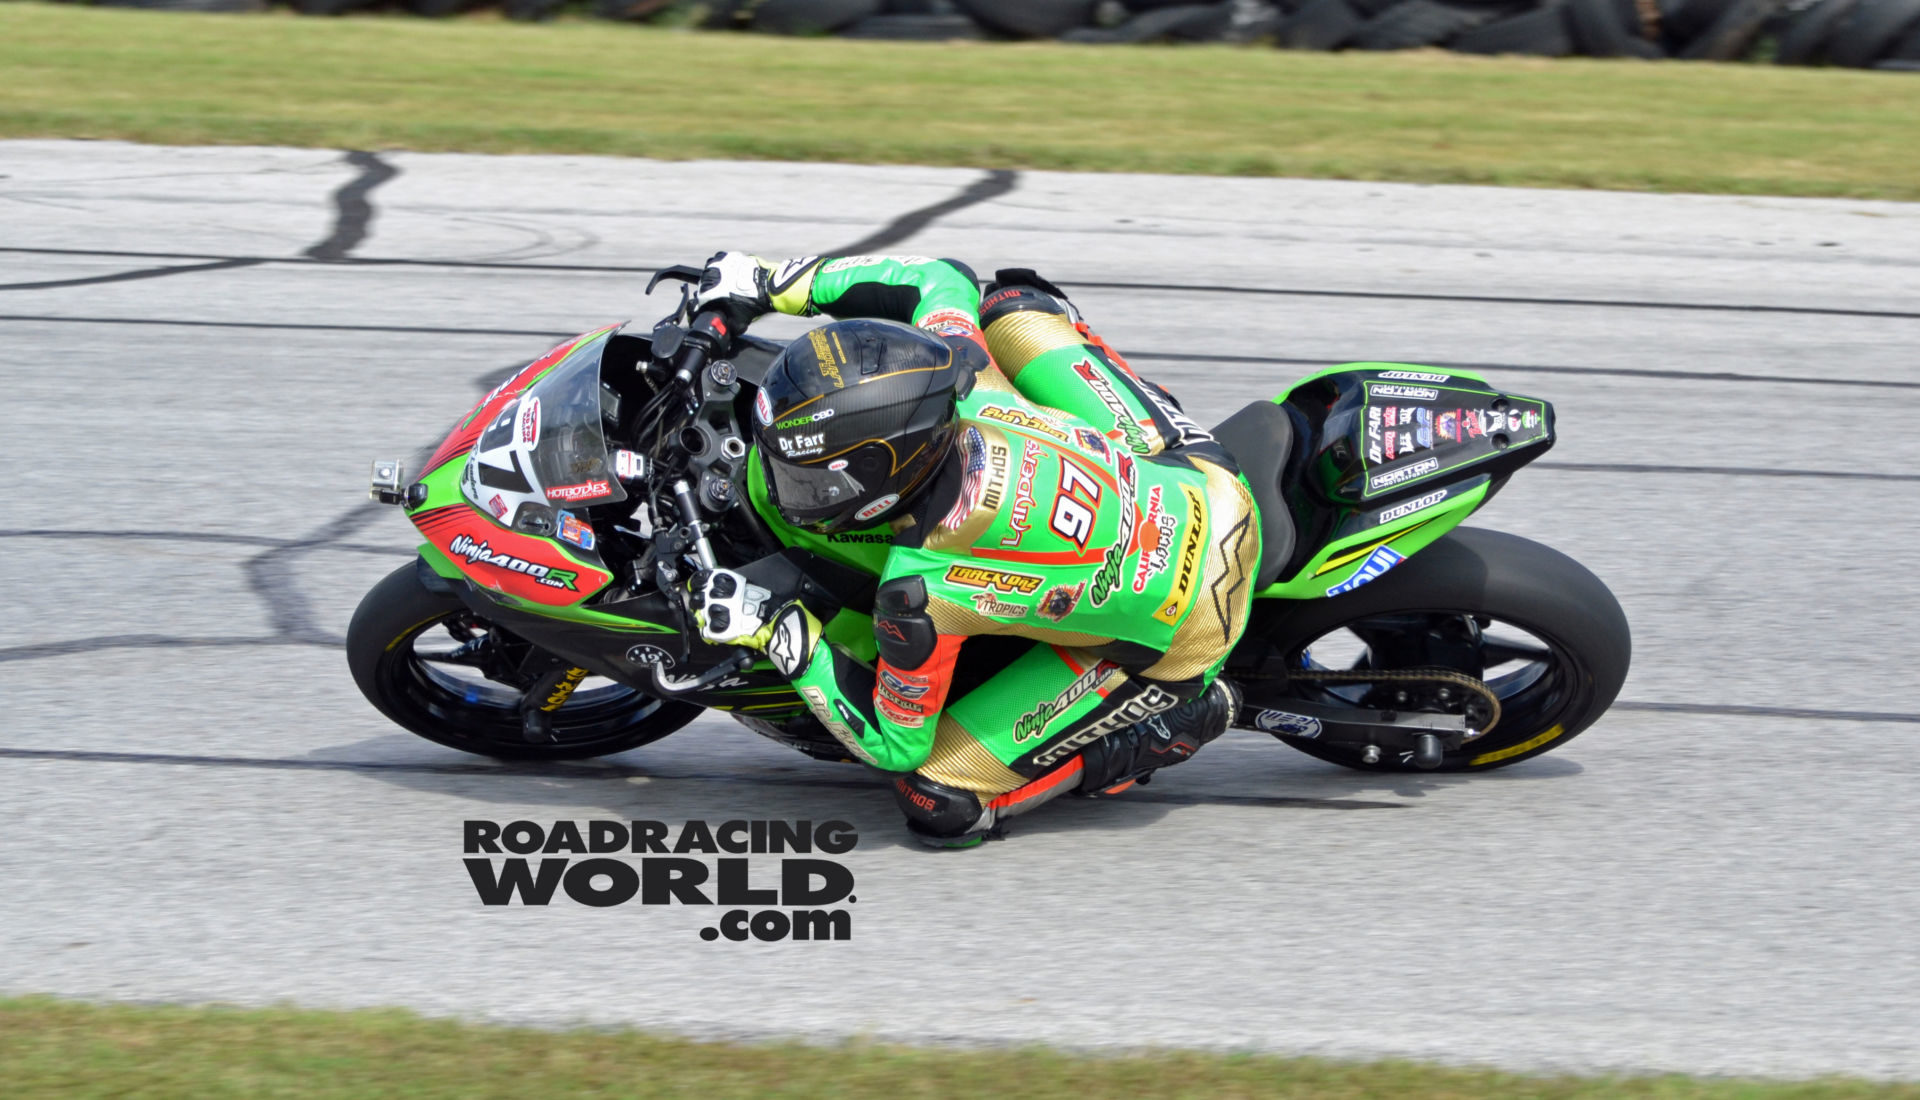 Rocco Landers (97) won four races Saturday at the